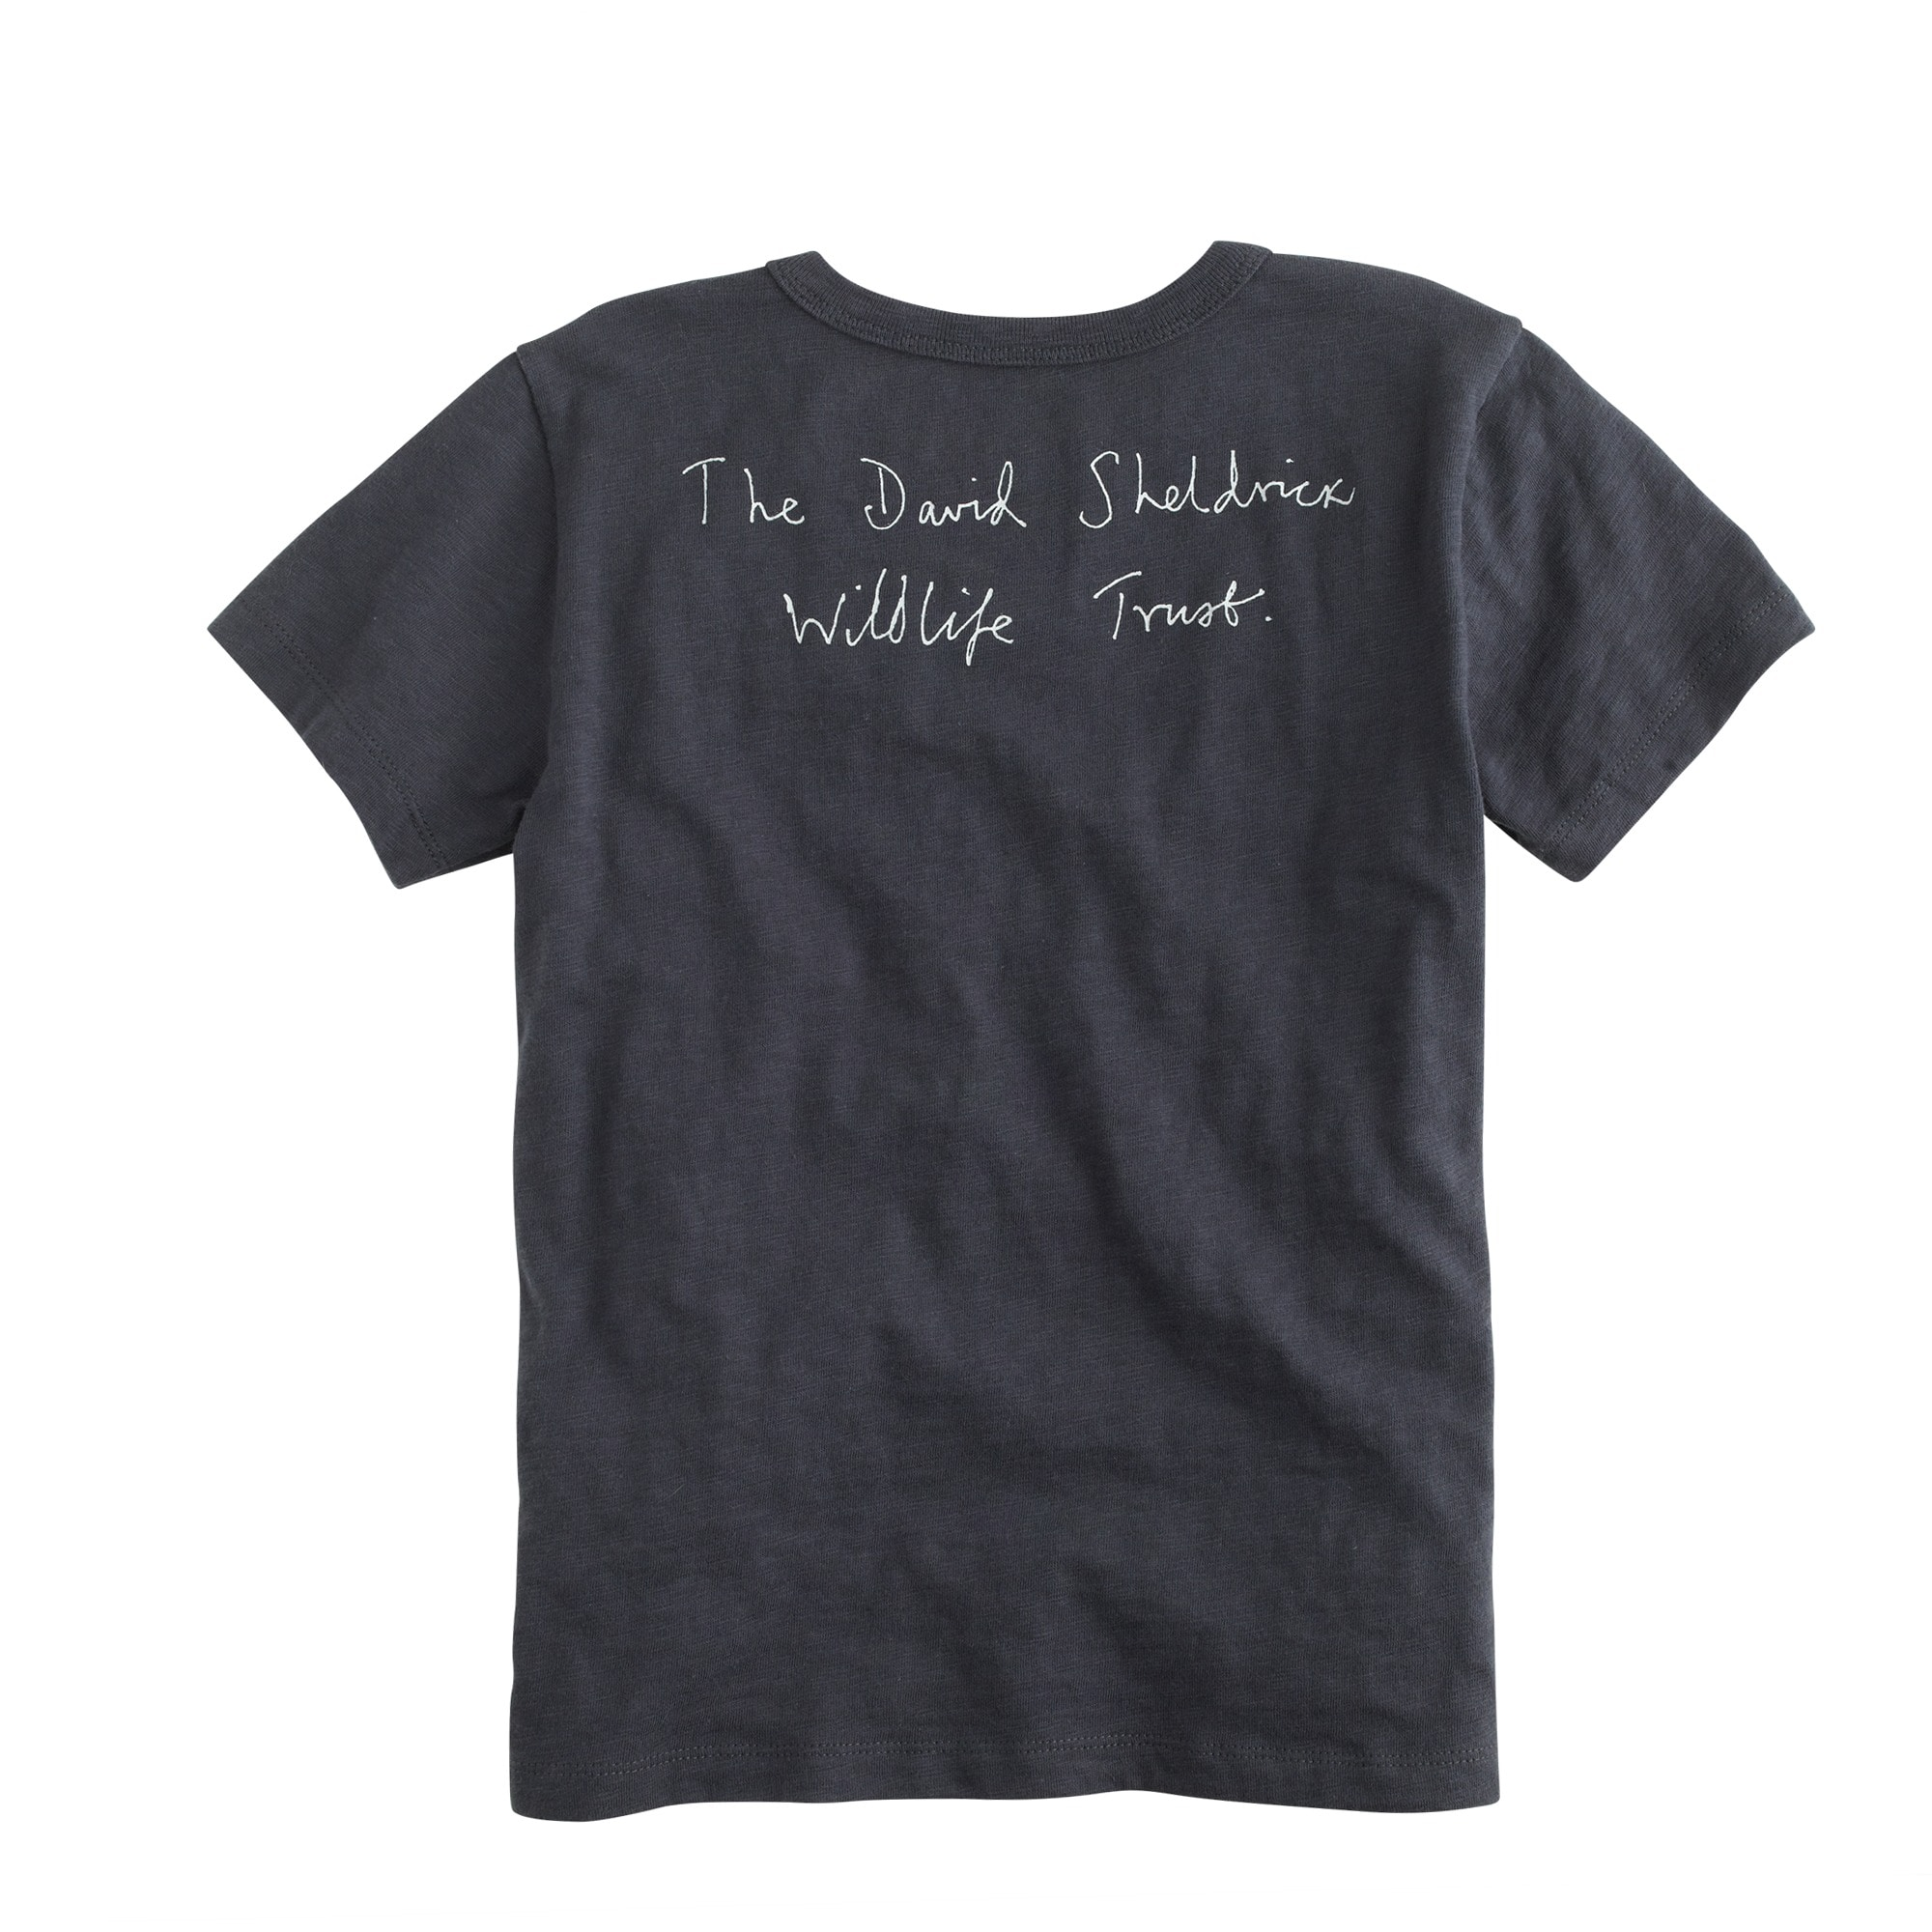 Kids' crewcuts for David Sheldrick Wildlife Trust Save More Elephants T-shirt